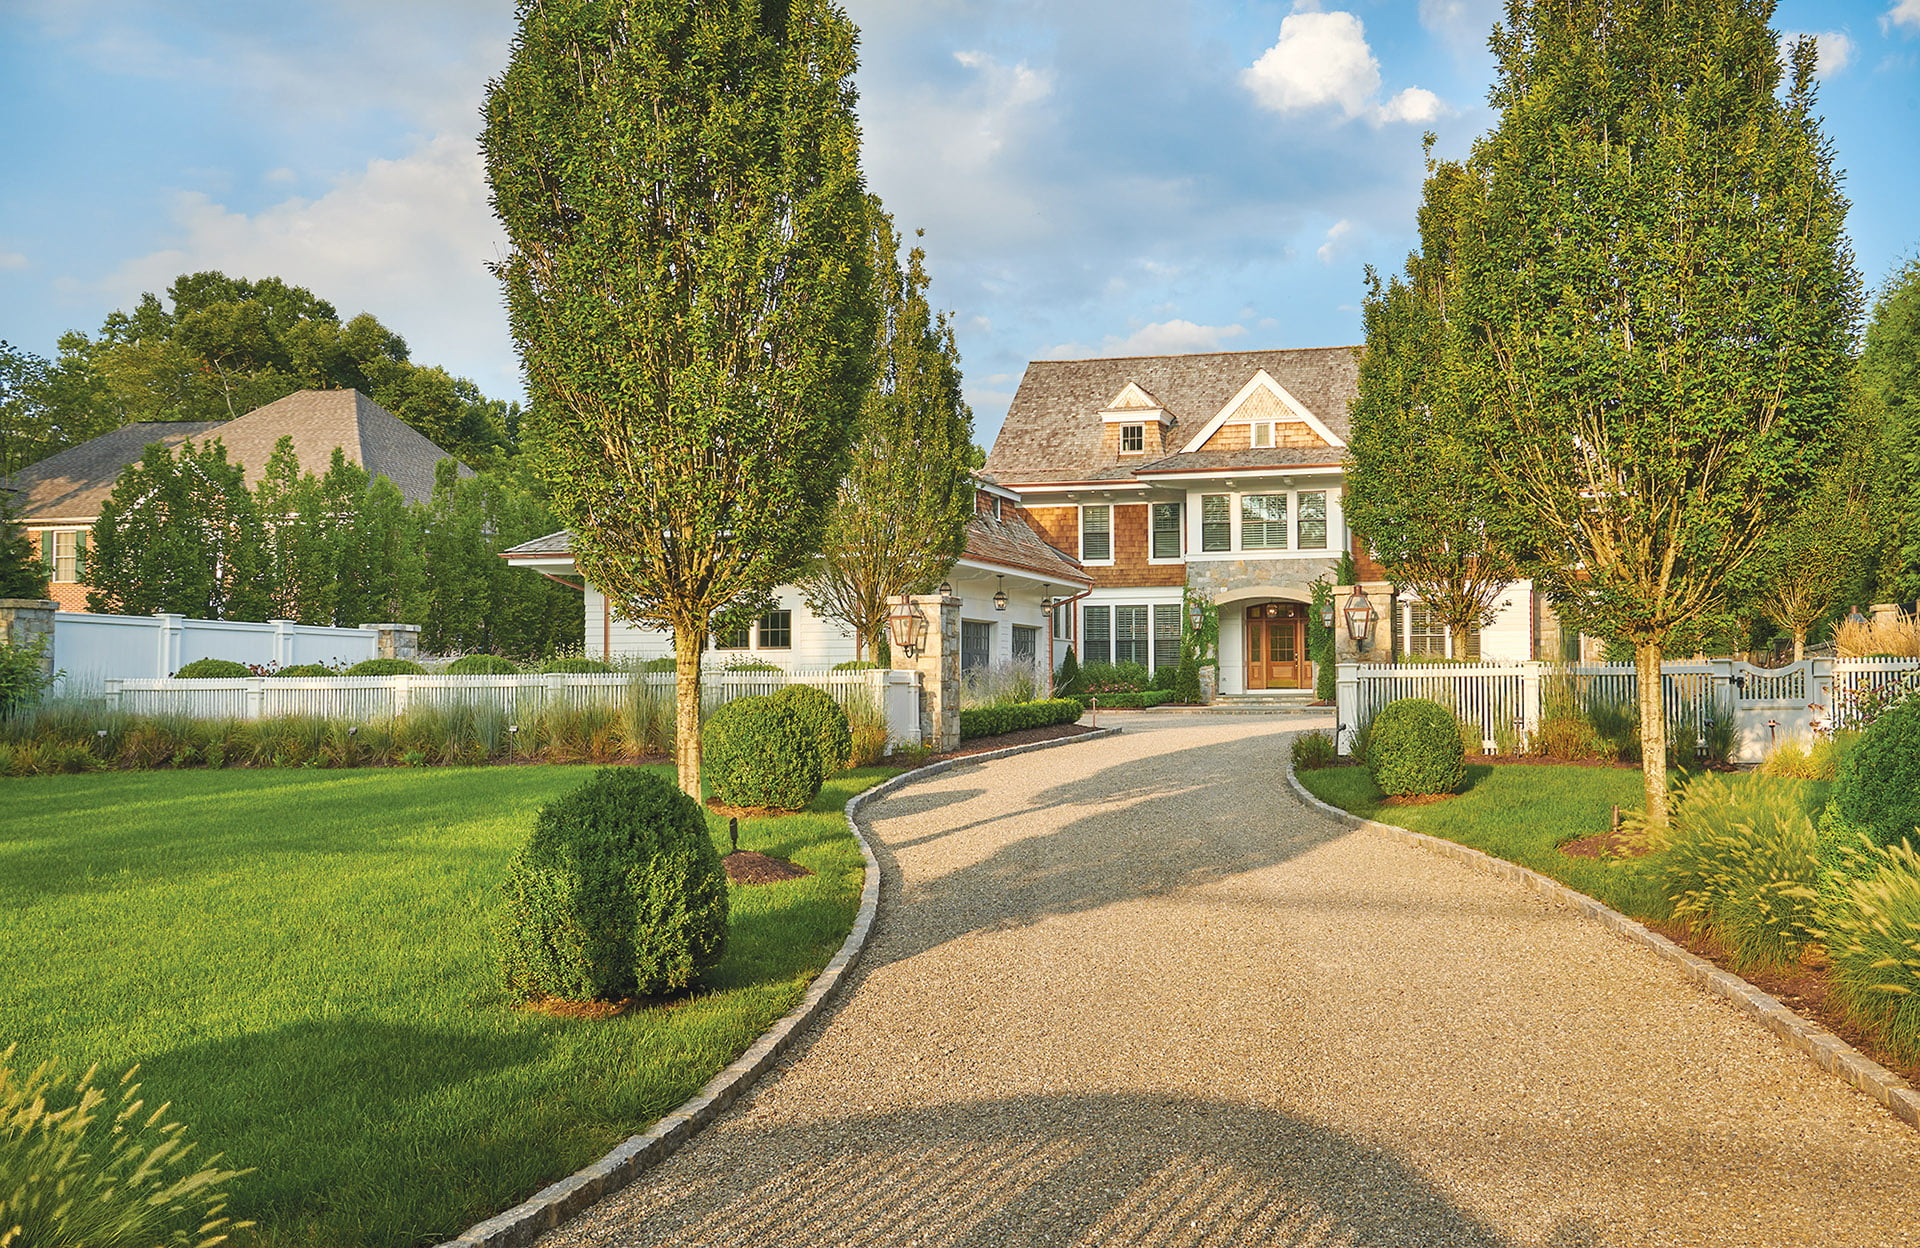 Surrounds, Inc., driveway made of Delaware Valley River Jack stone bordered by granite cobblestone.